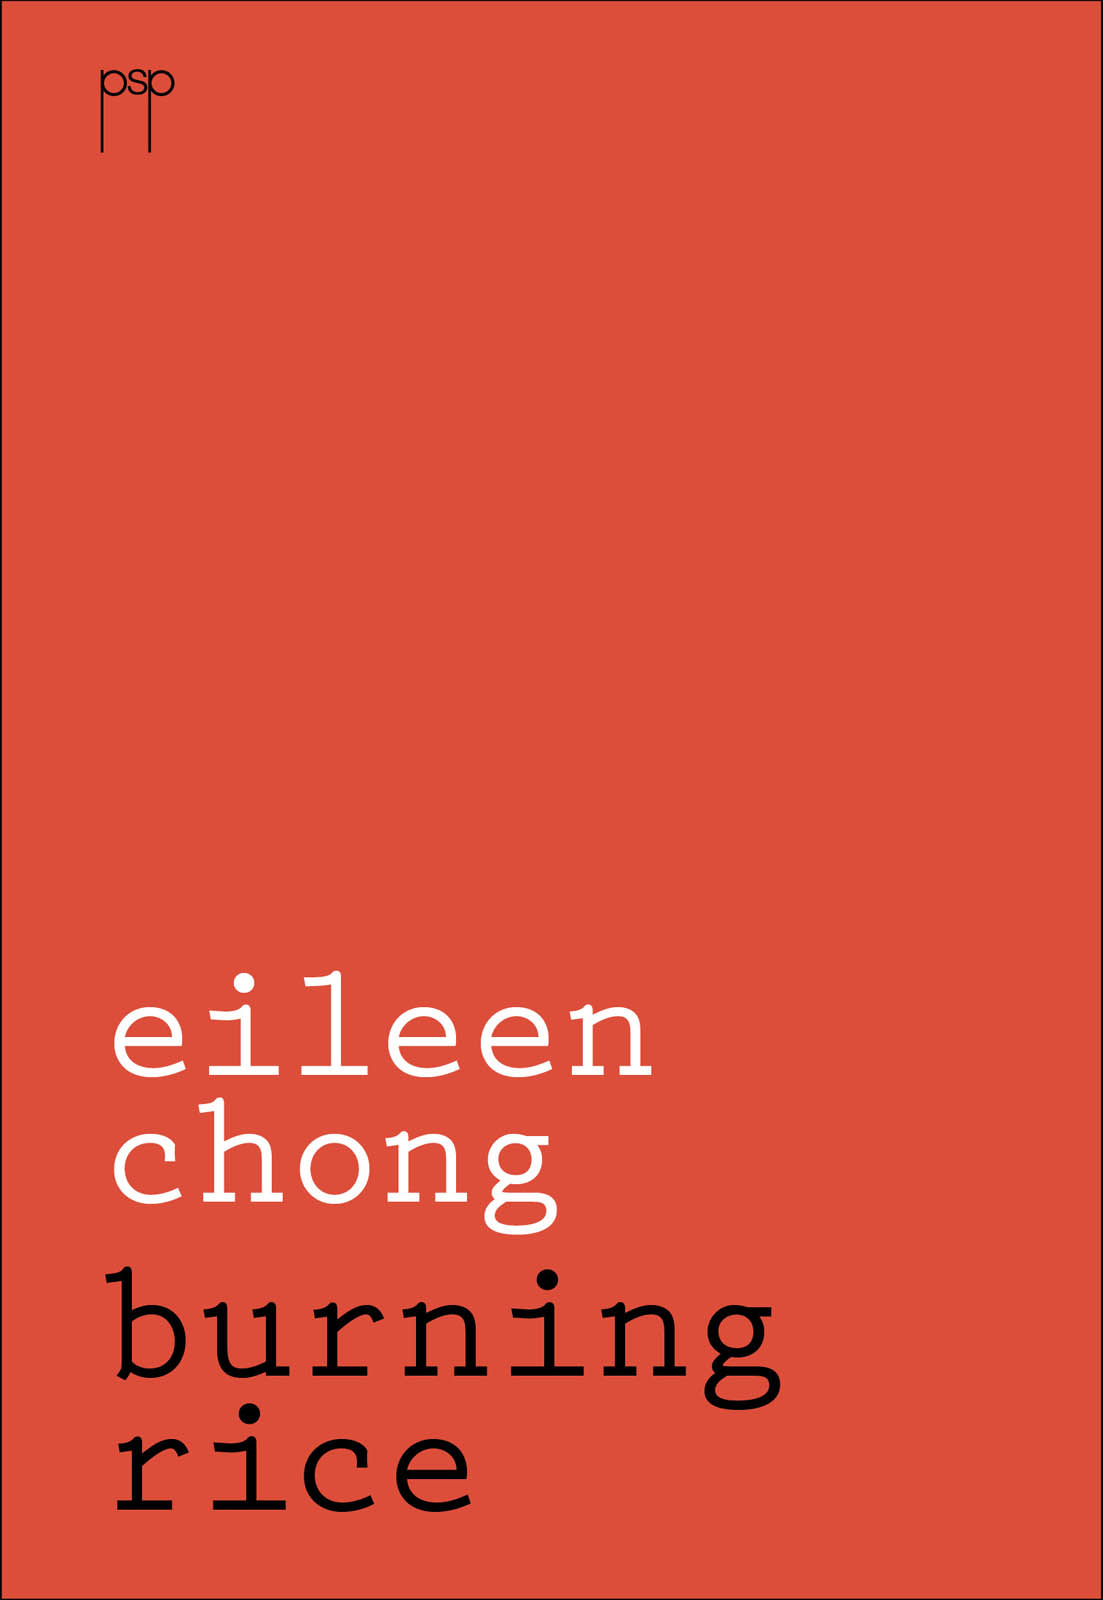 Burning Rice (e-book in Kindle format)